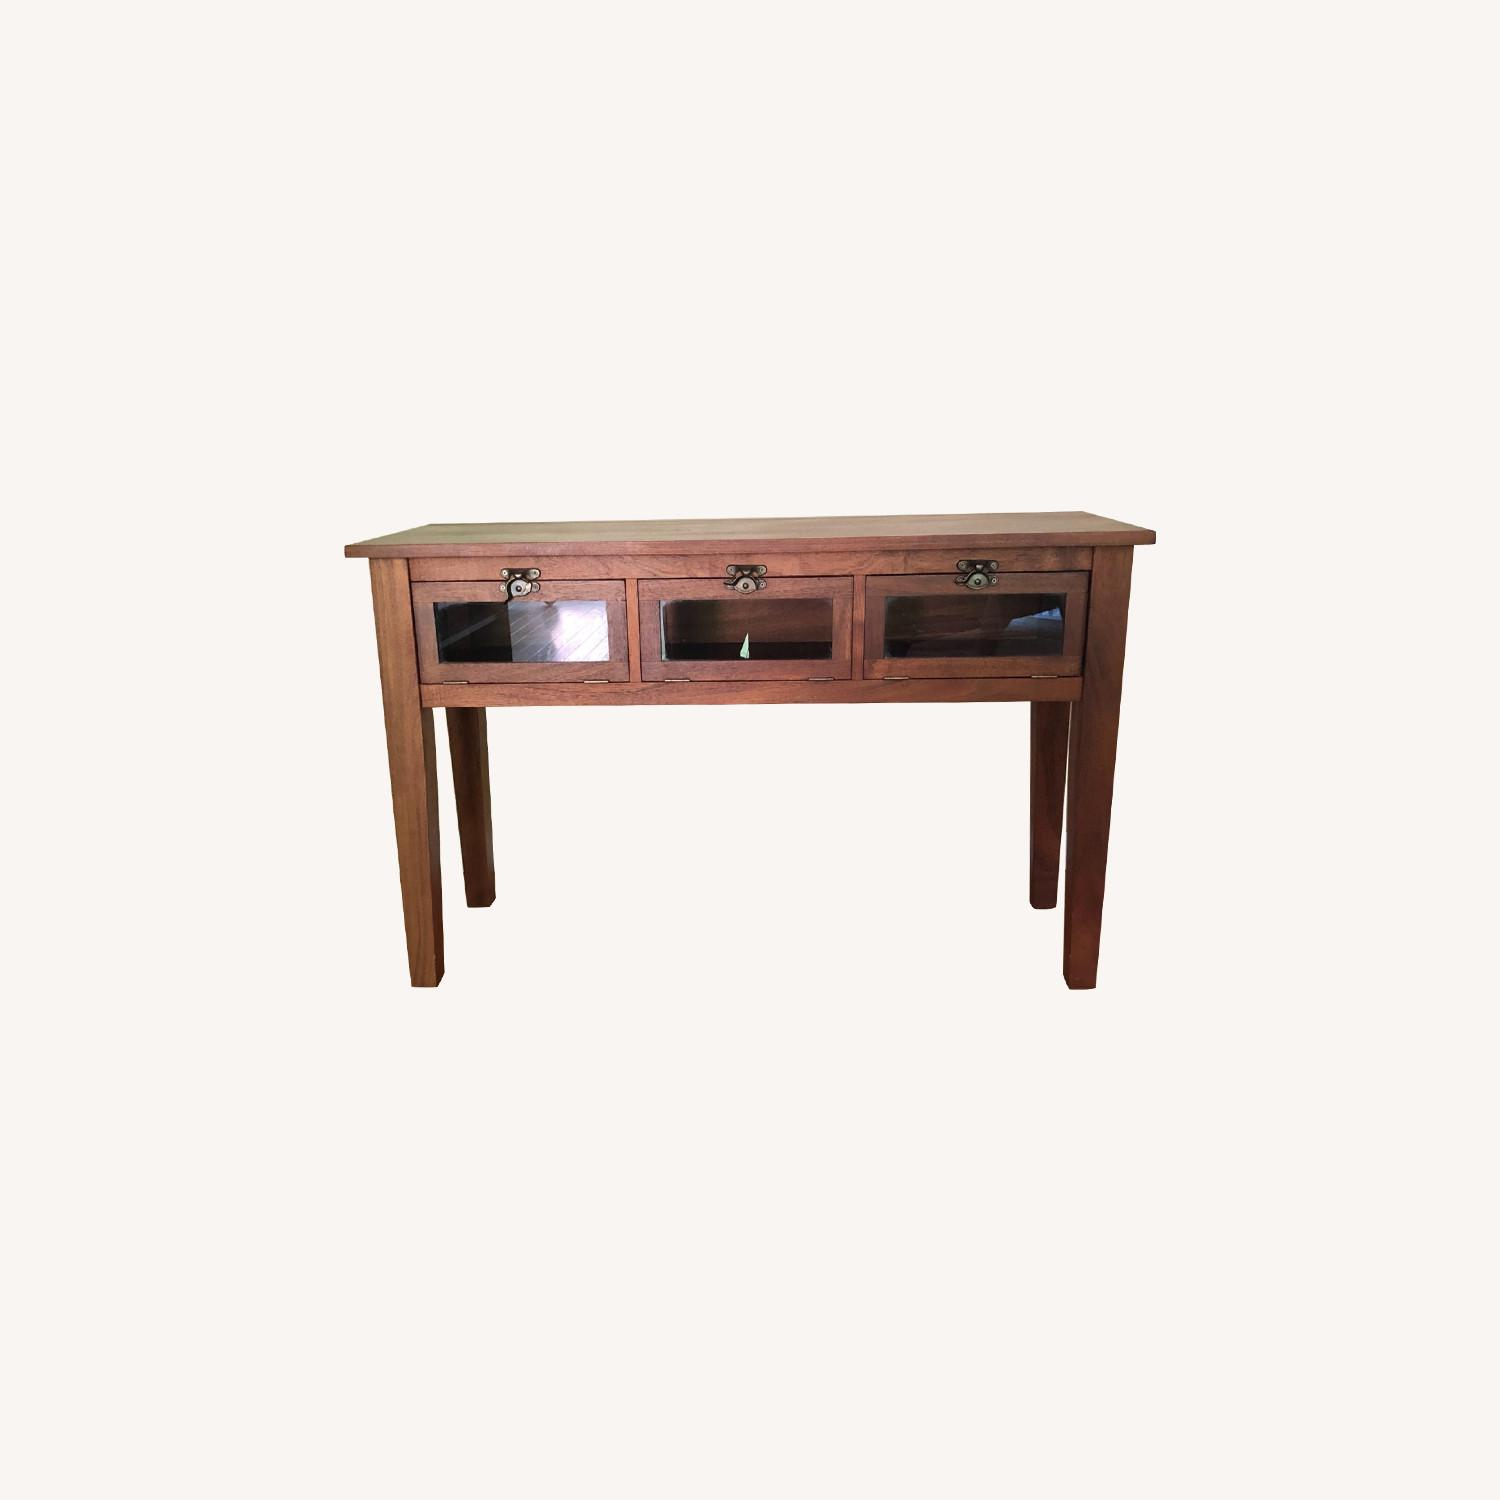 Pottery Barn Buffet / Sideboard with Glass Front Doors - image-0